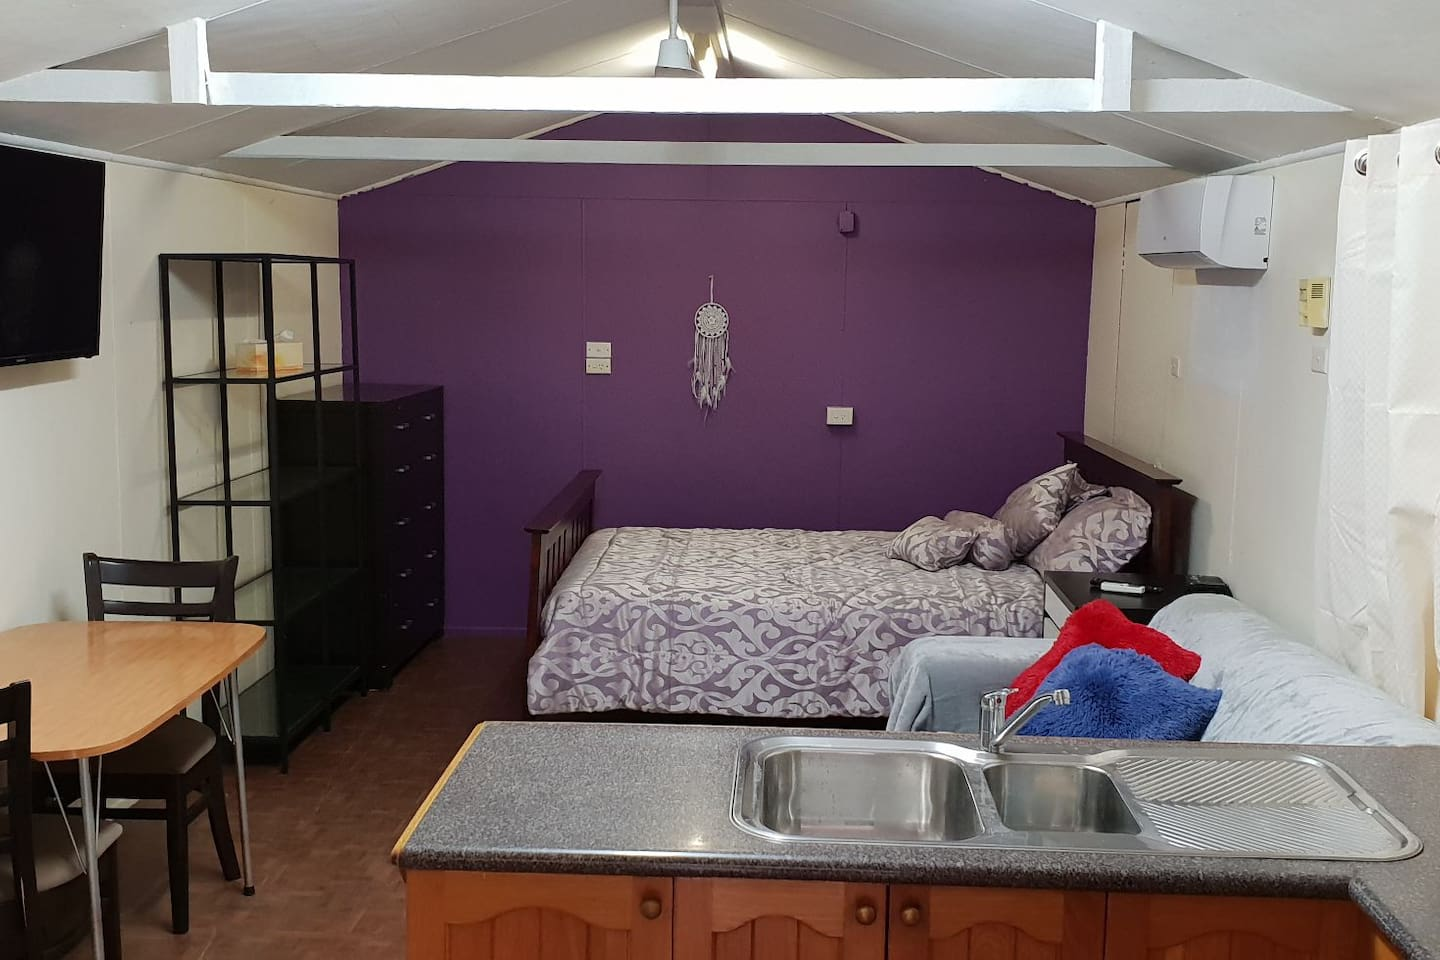 Granny Flat - bed, shelving and draws, sofa, mounted TV, has ceiling fan and air conditioning